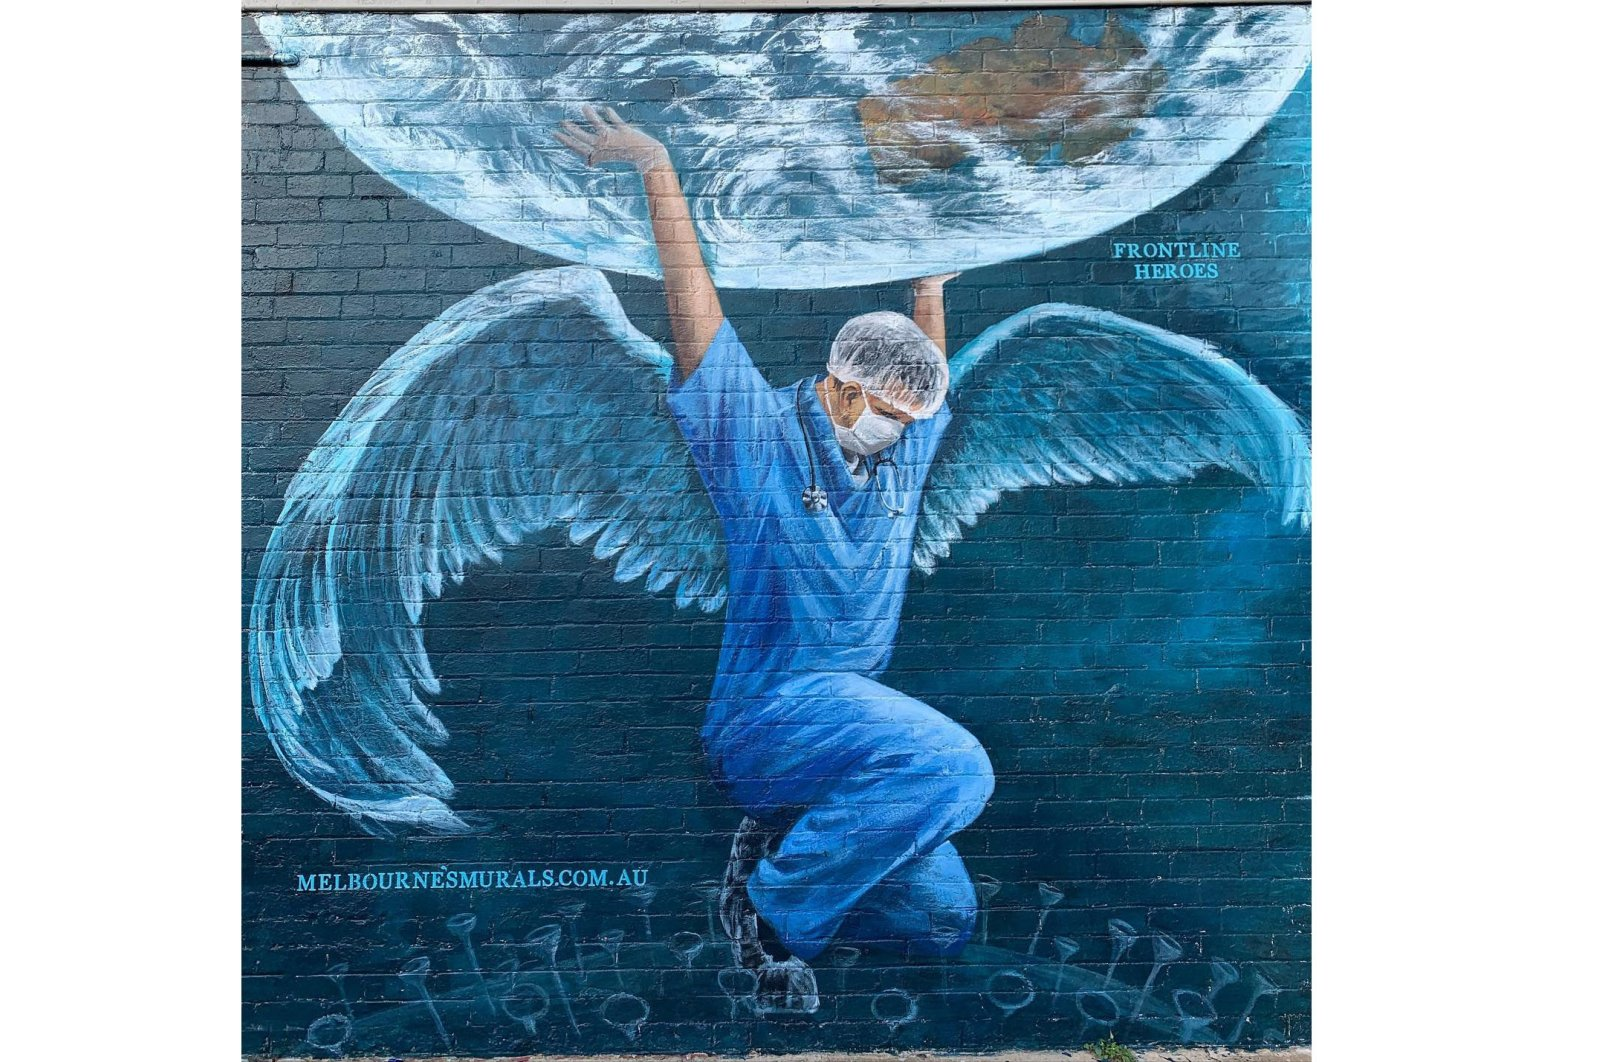 A health care worker in the Atlas pose holding up the earth by Brigitte Dawson and Melissa Turner of Melbourne's Murals, 606 Balcombe Road Blackrock, Melbourne, Victoria, Australia. (Courtesy of YEE)